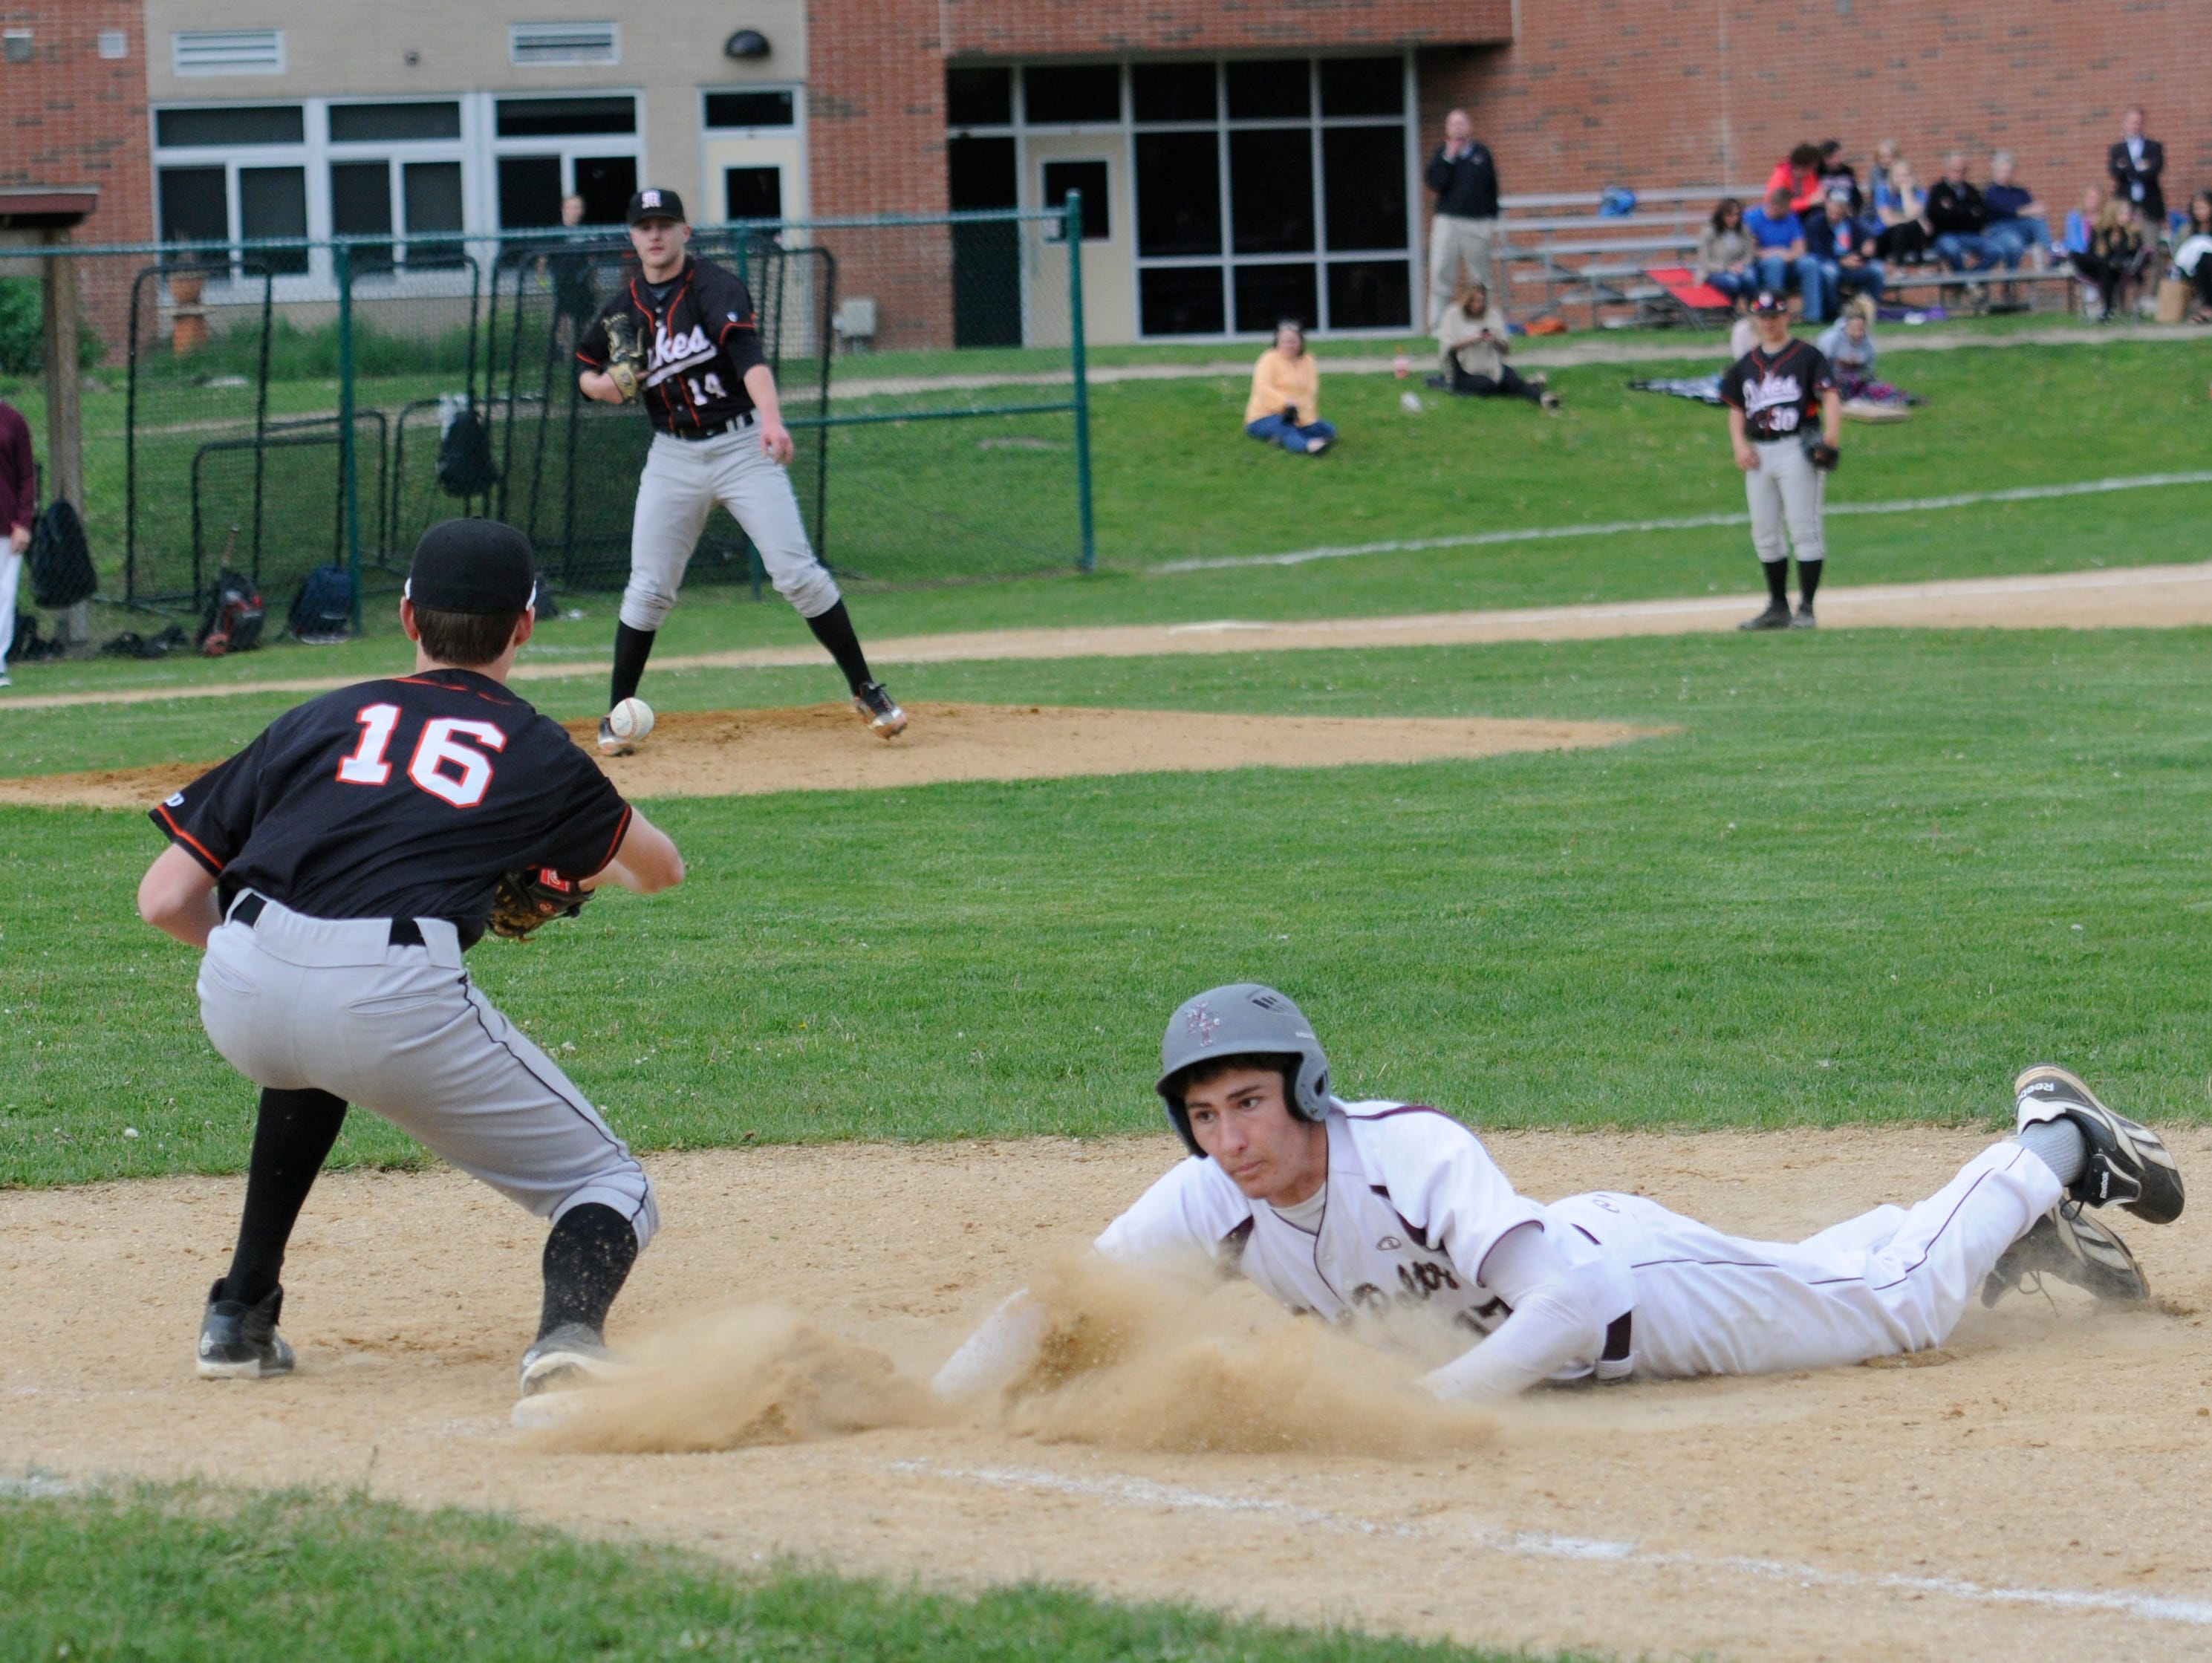 New Paltz's Adam Stolfe slides back to first base as Marlboro's Jack Rusk prepares to catch the ball from Nick Mongelli during Tuesday's game at New Paltz.